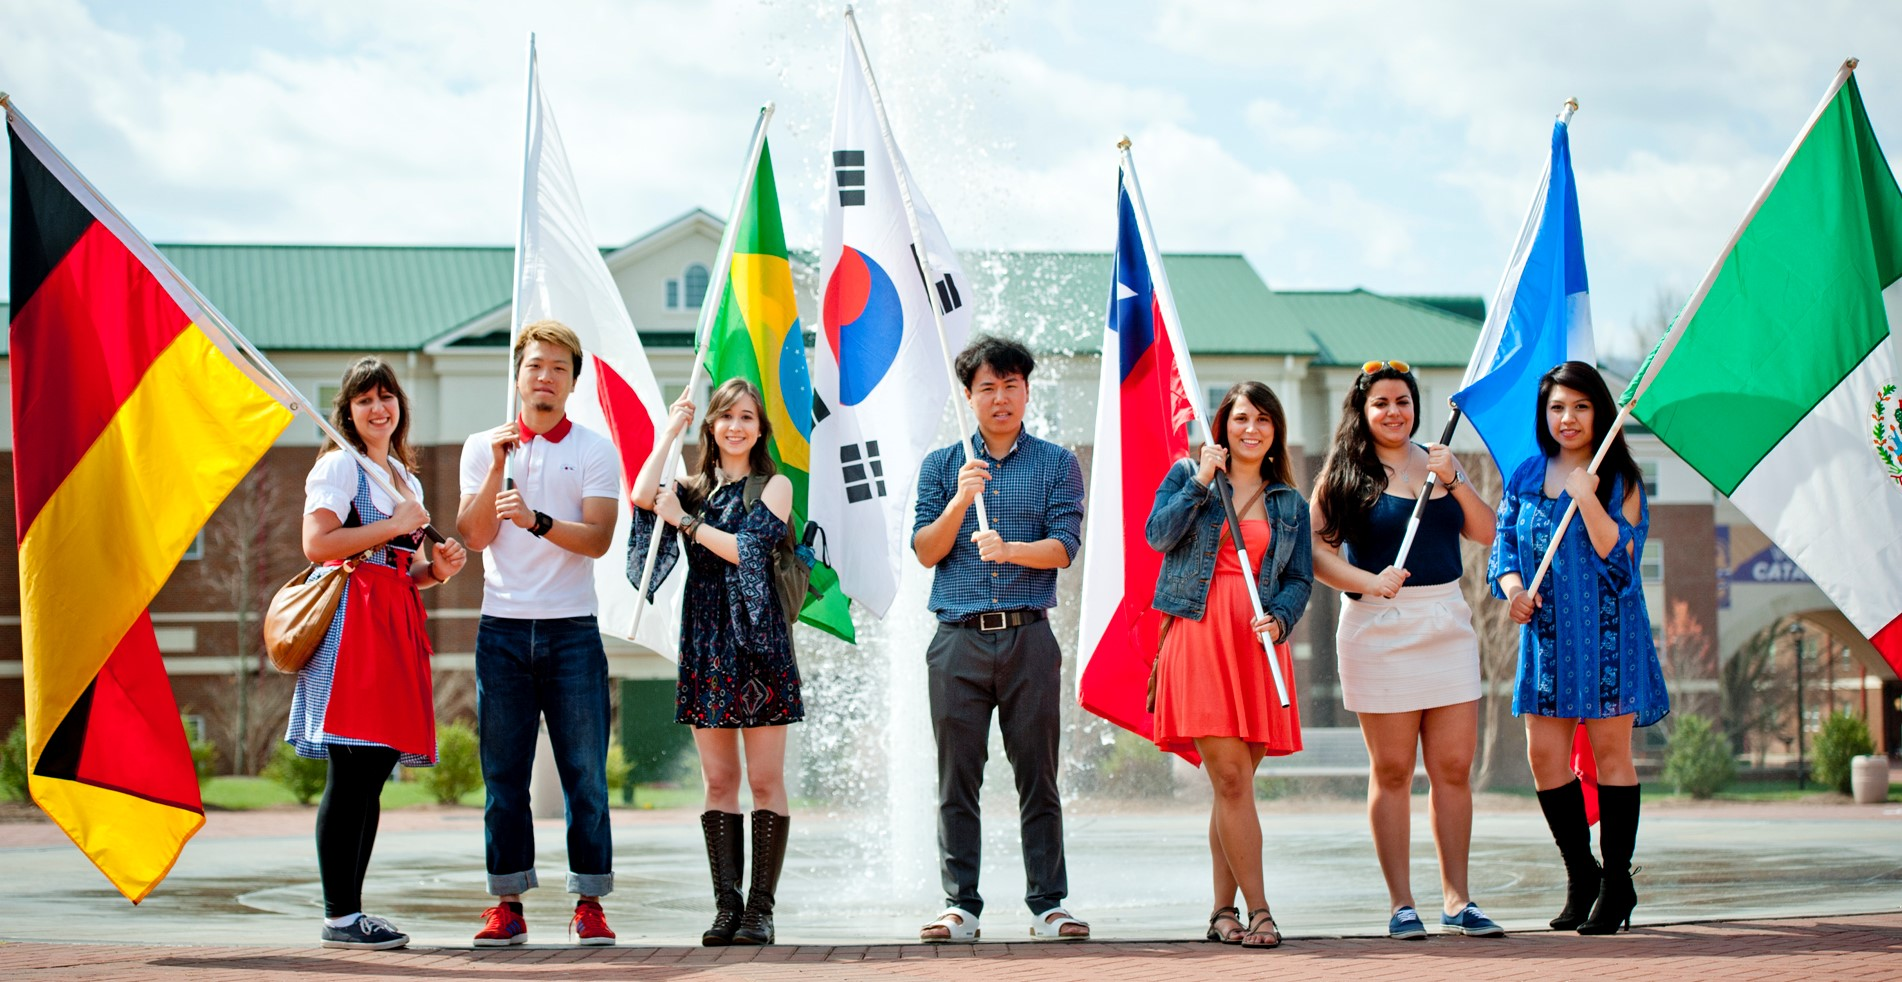 Students holding flags of different countries